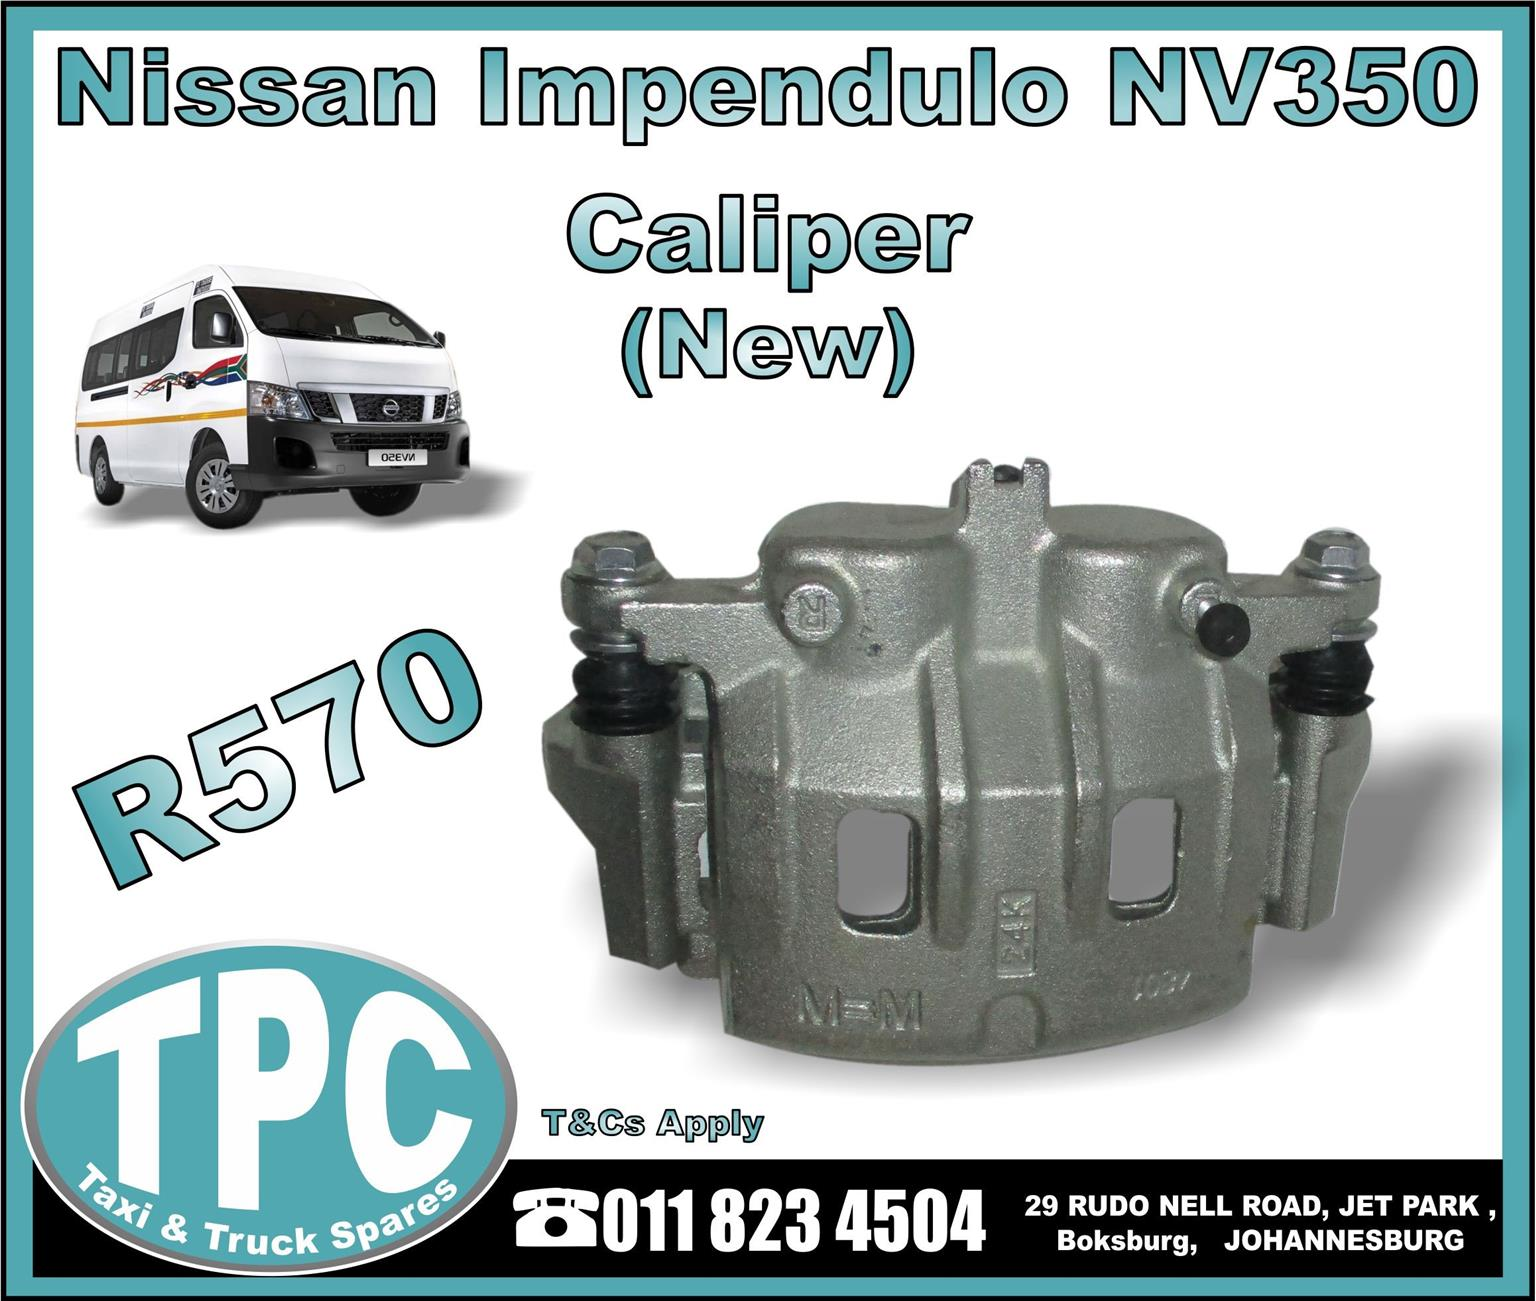 Nissan Impendulo NV350 Caliper - New And Used Replacement Taxi Parts - TPC.